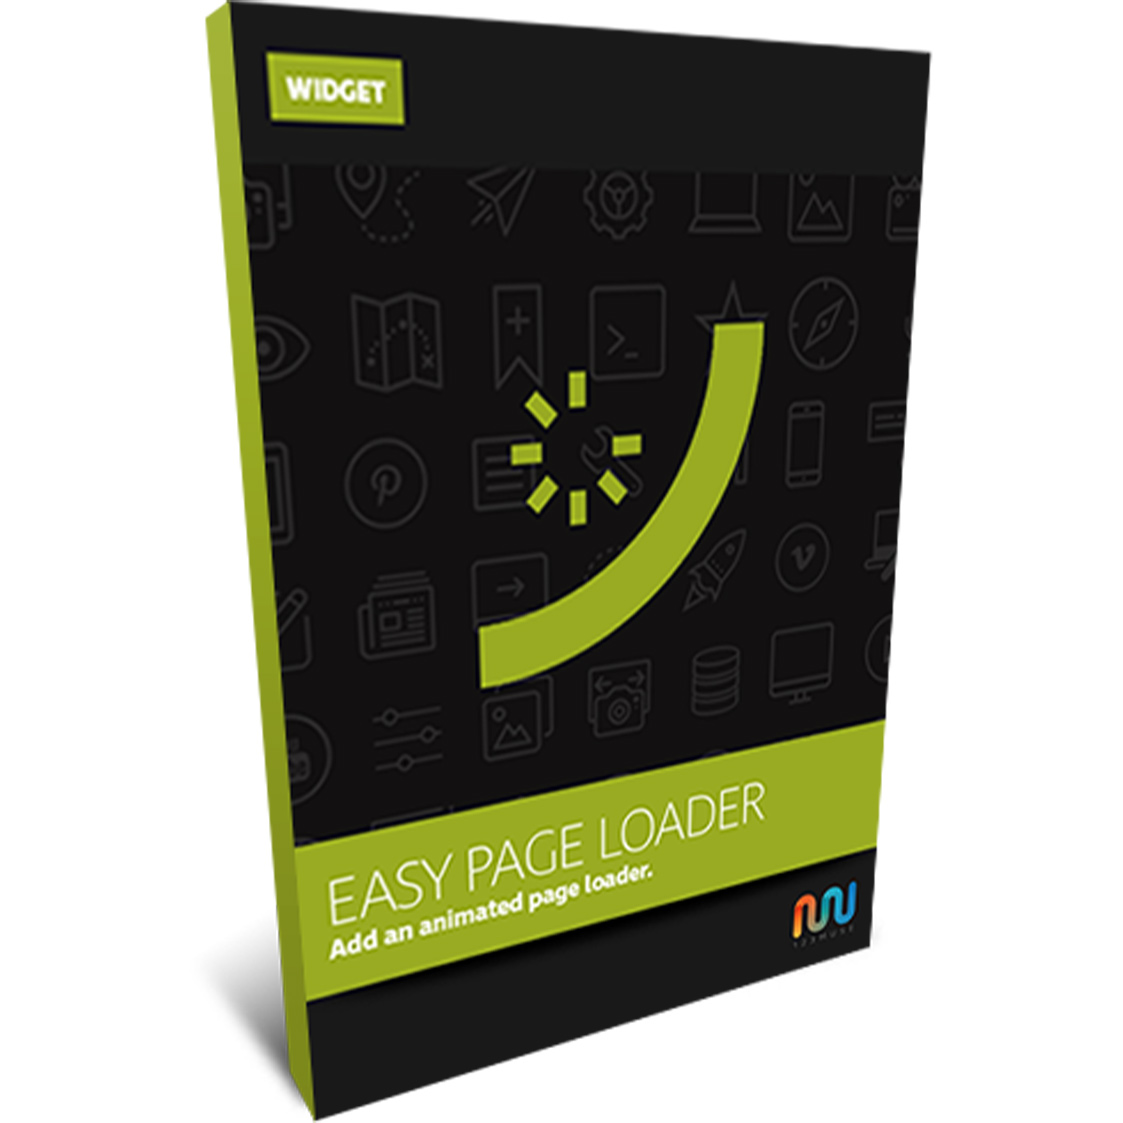 Easy Page Loader